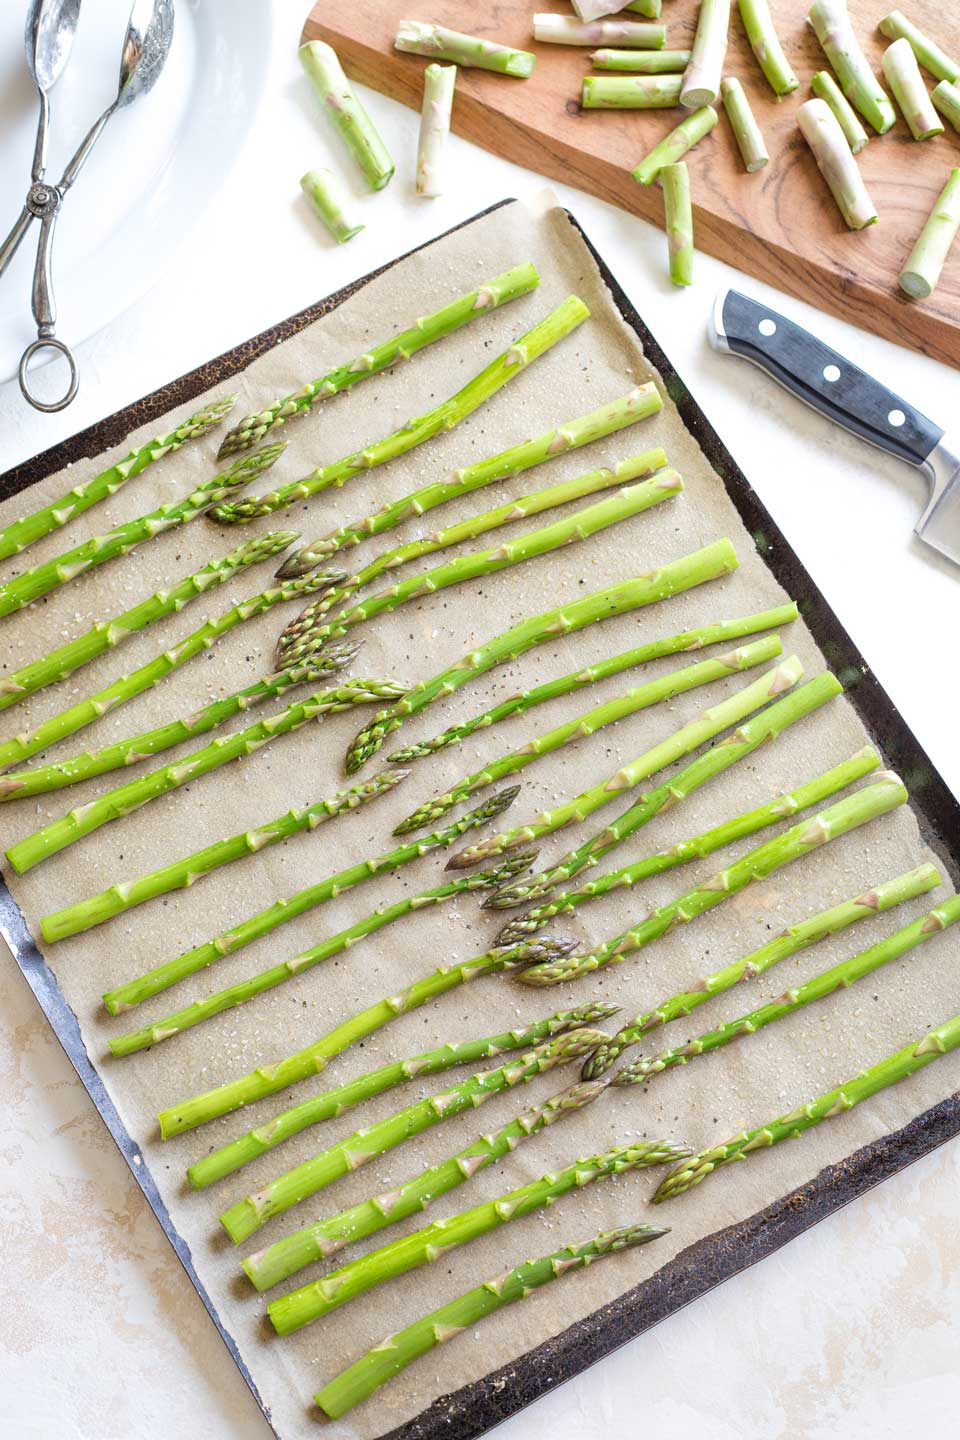 Overhead of a parchment-lined sheet pan ready for the oven, with raw asparagus arranged in a single layer and the discarded ends laying on a nearby cutting board.